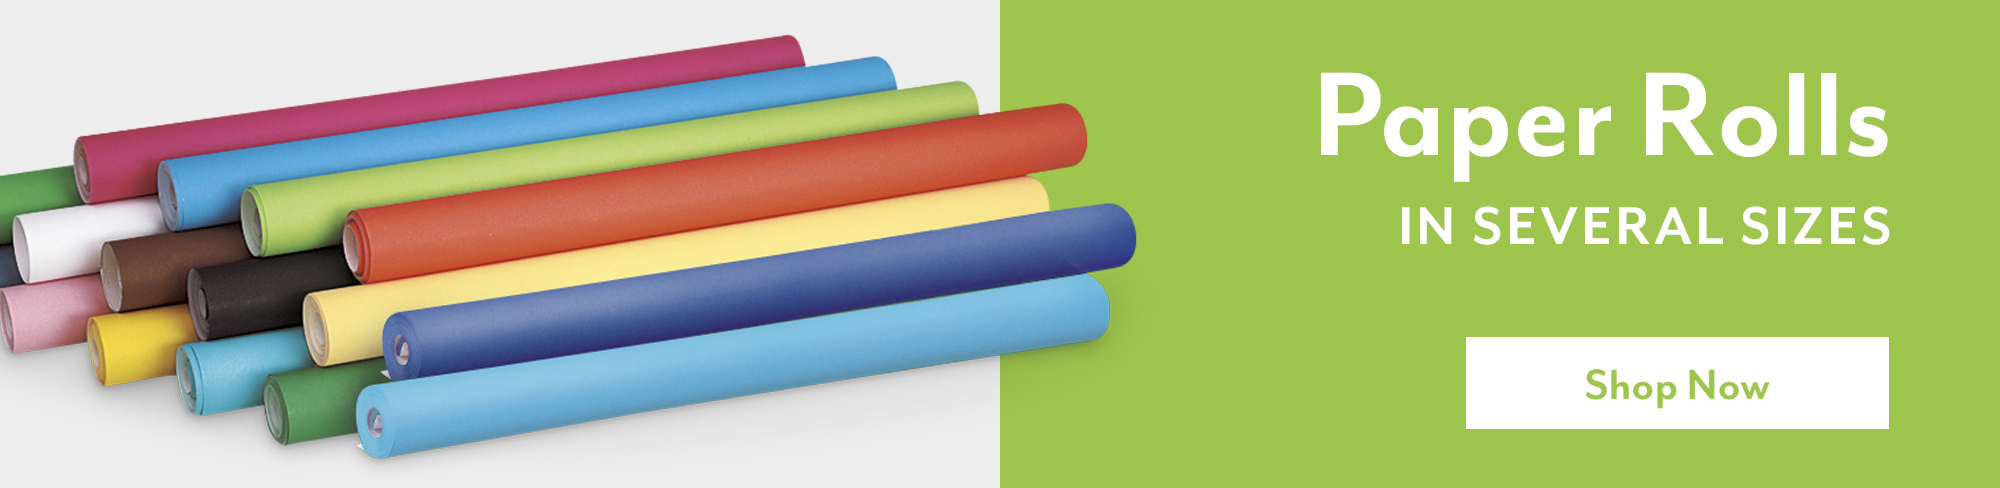 Paper rolls in several sizes - Shop Now